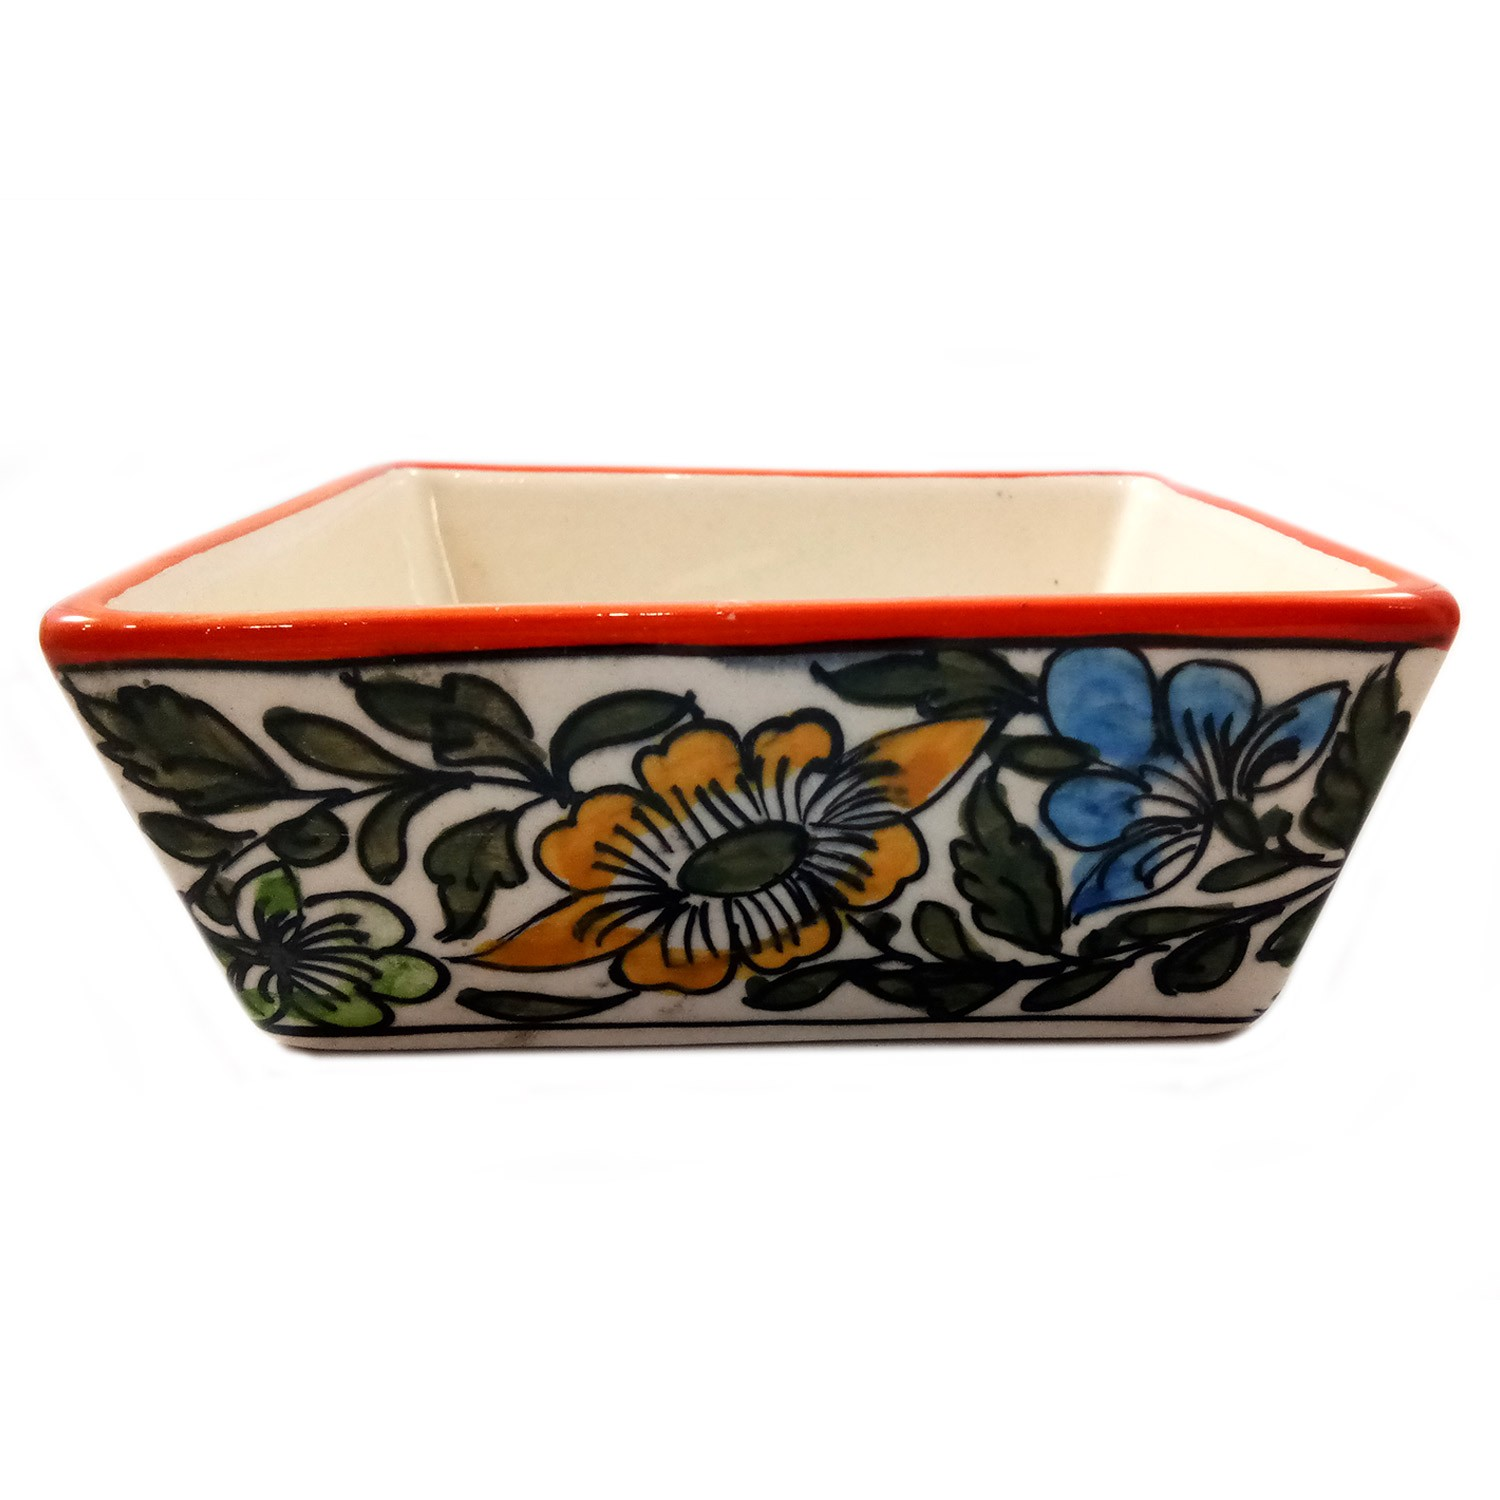 Handmade Orange with Multicolor Flower Painting Small Bowl by awarded artisans from UP